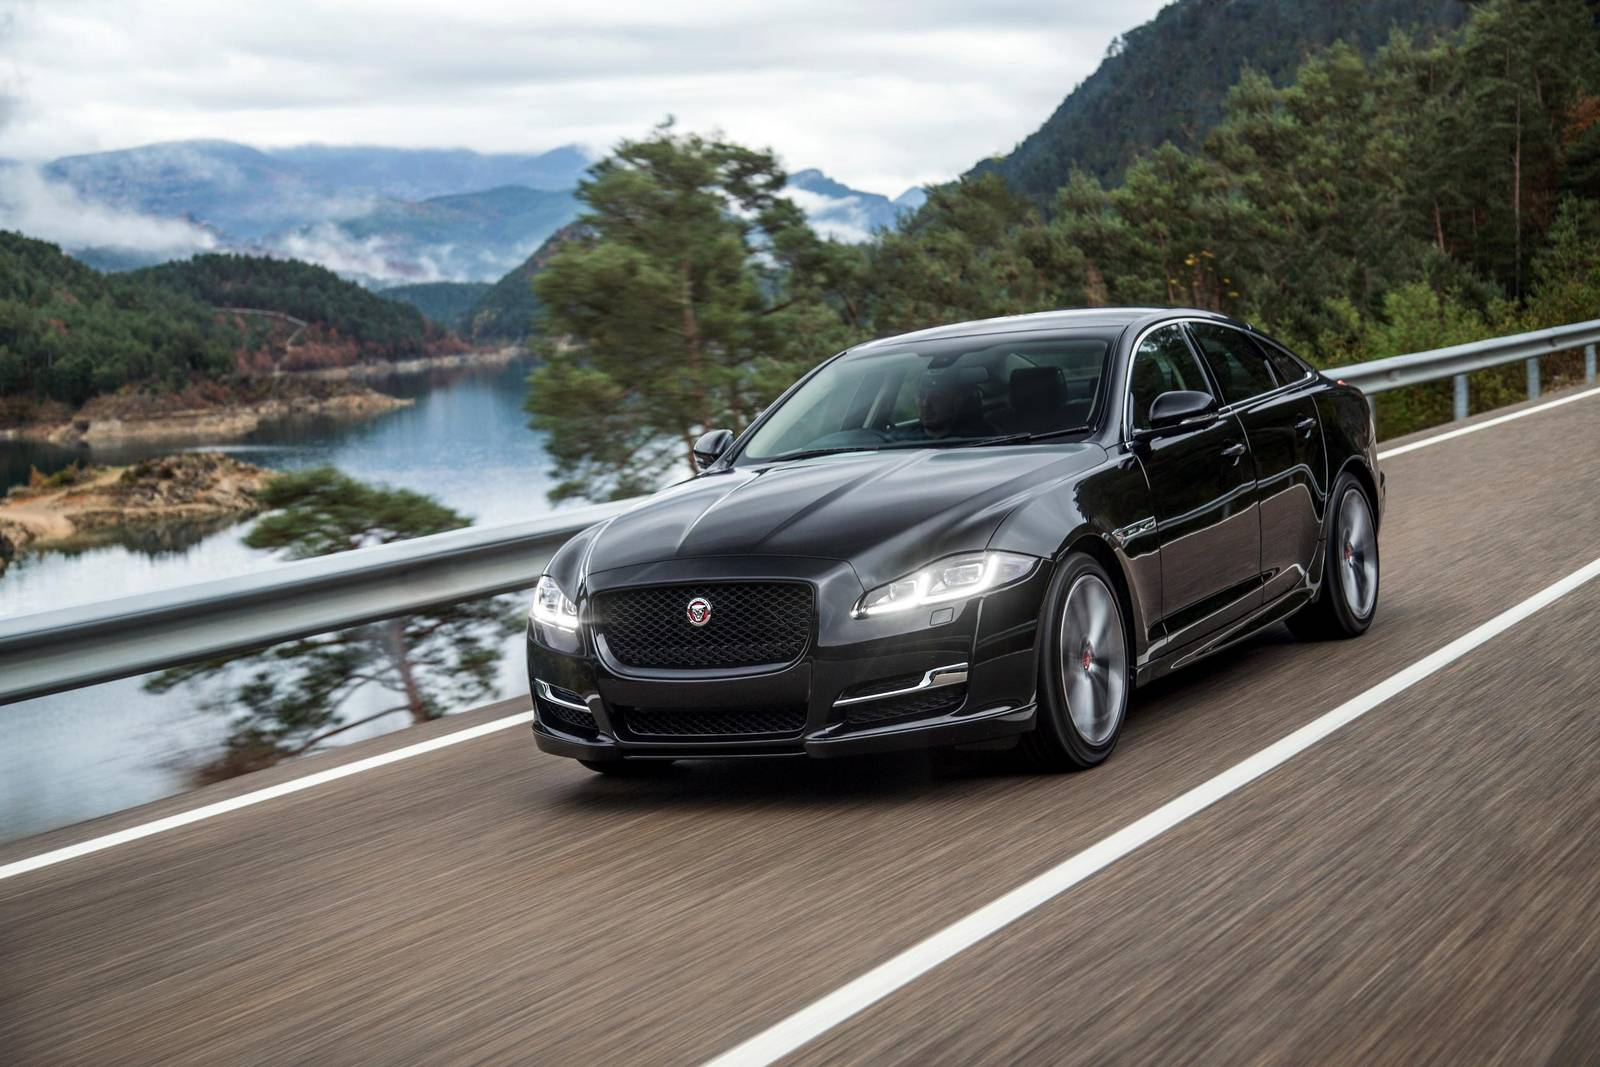 jaguar xj to be replaced with new model gtspirit. Black Bedroom Furniture Sets. Home Design Ideas